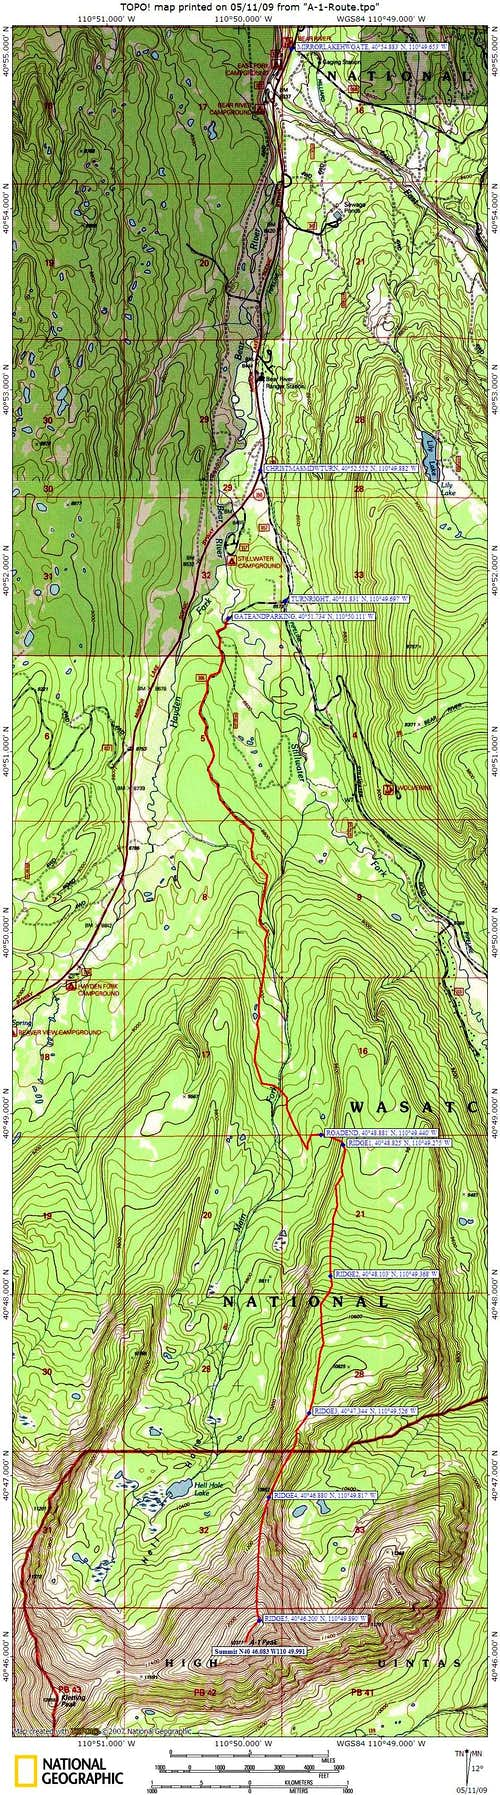 North ridge of A-1 top map